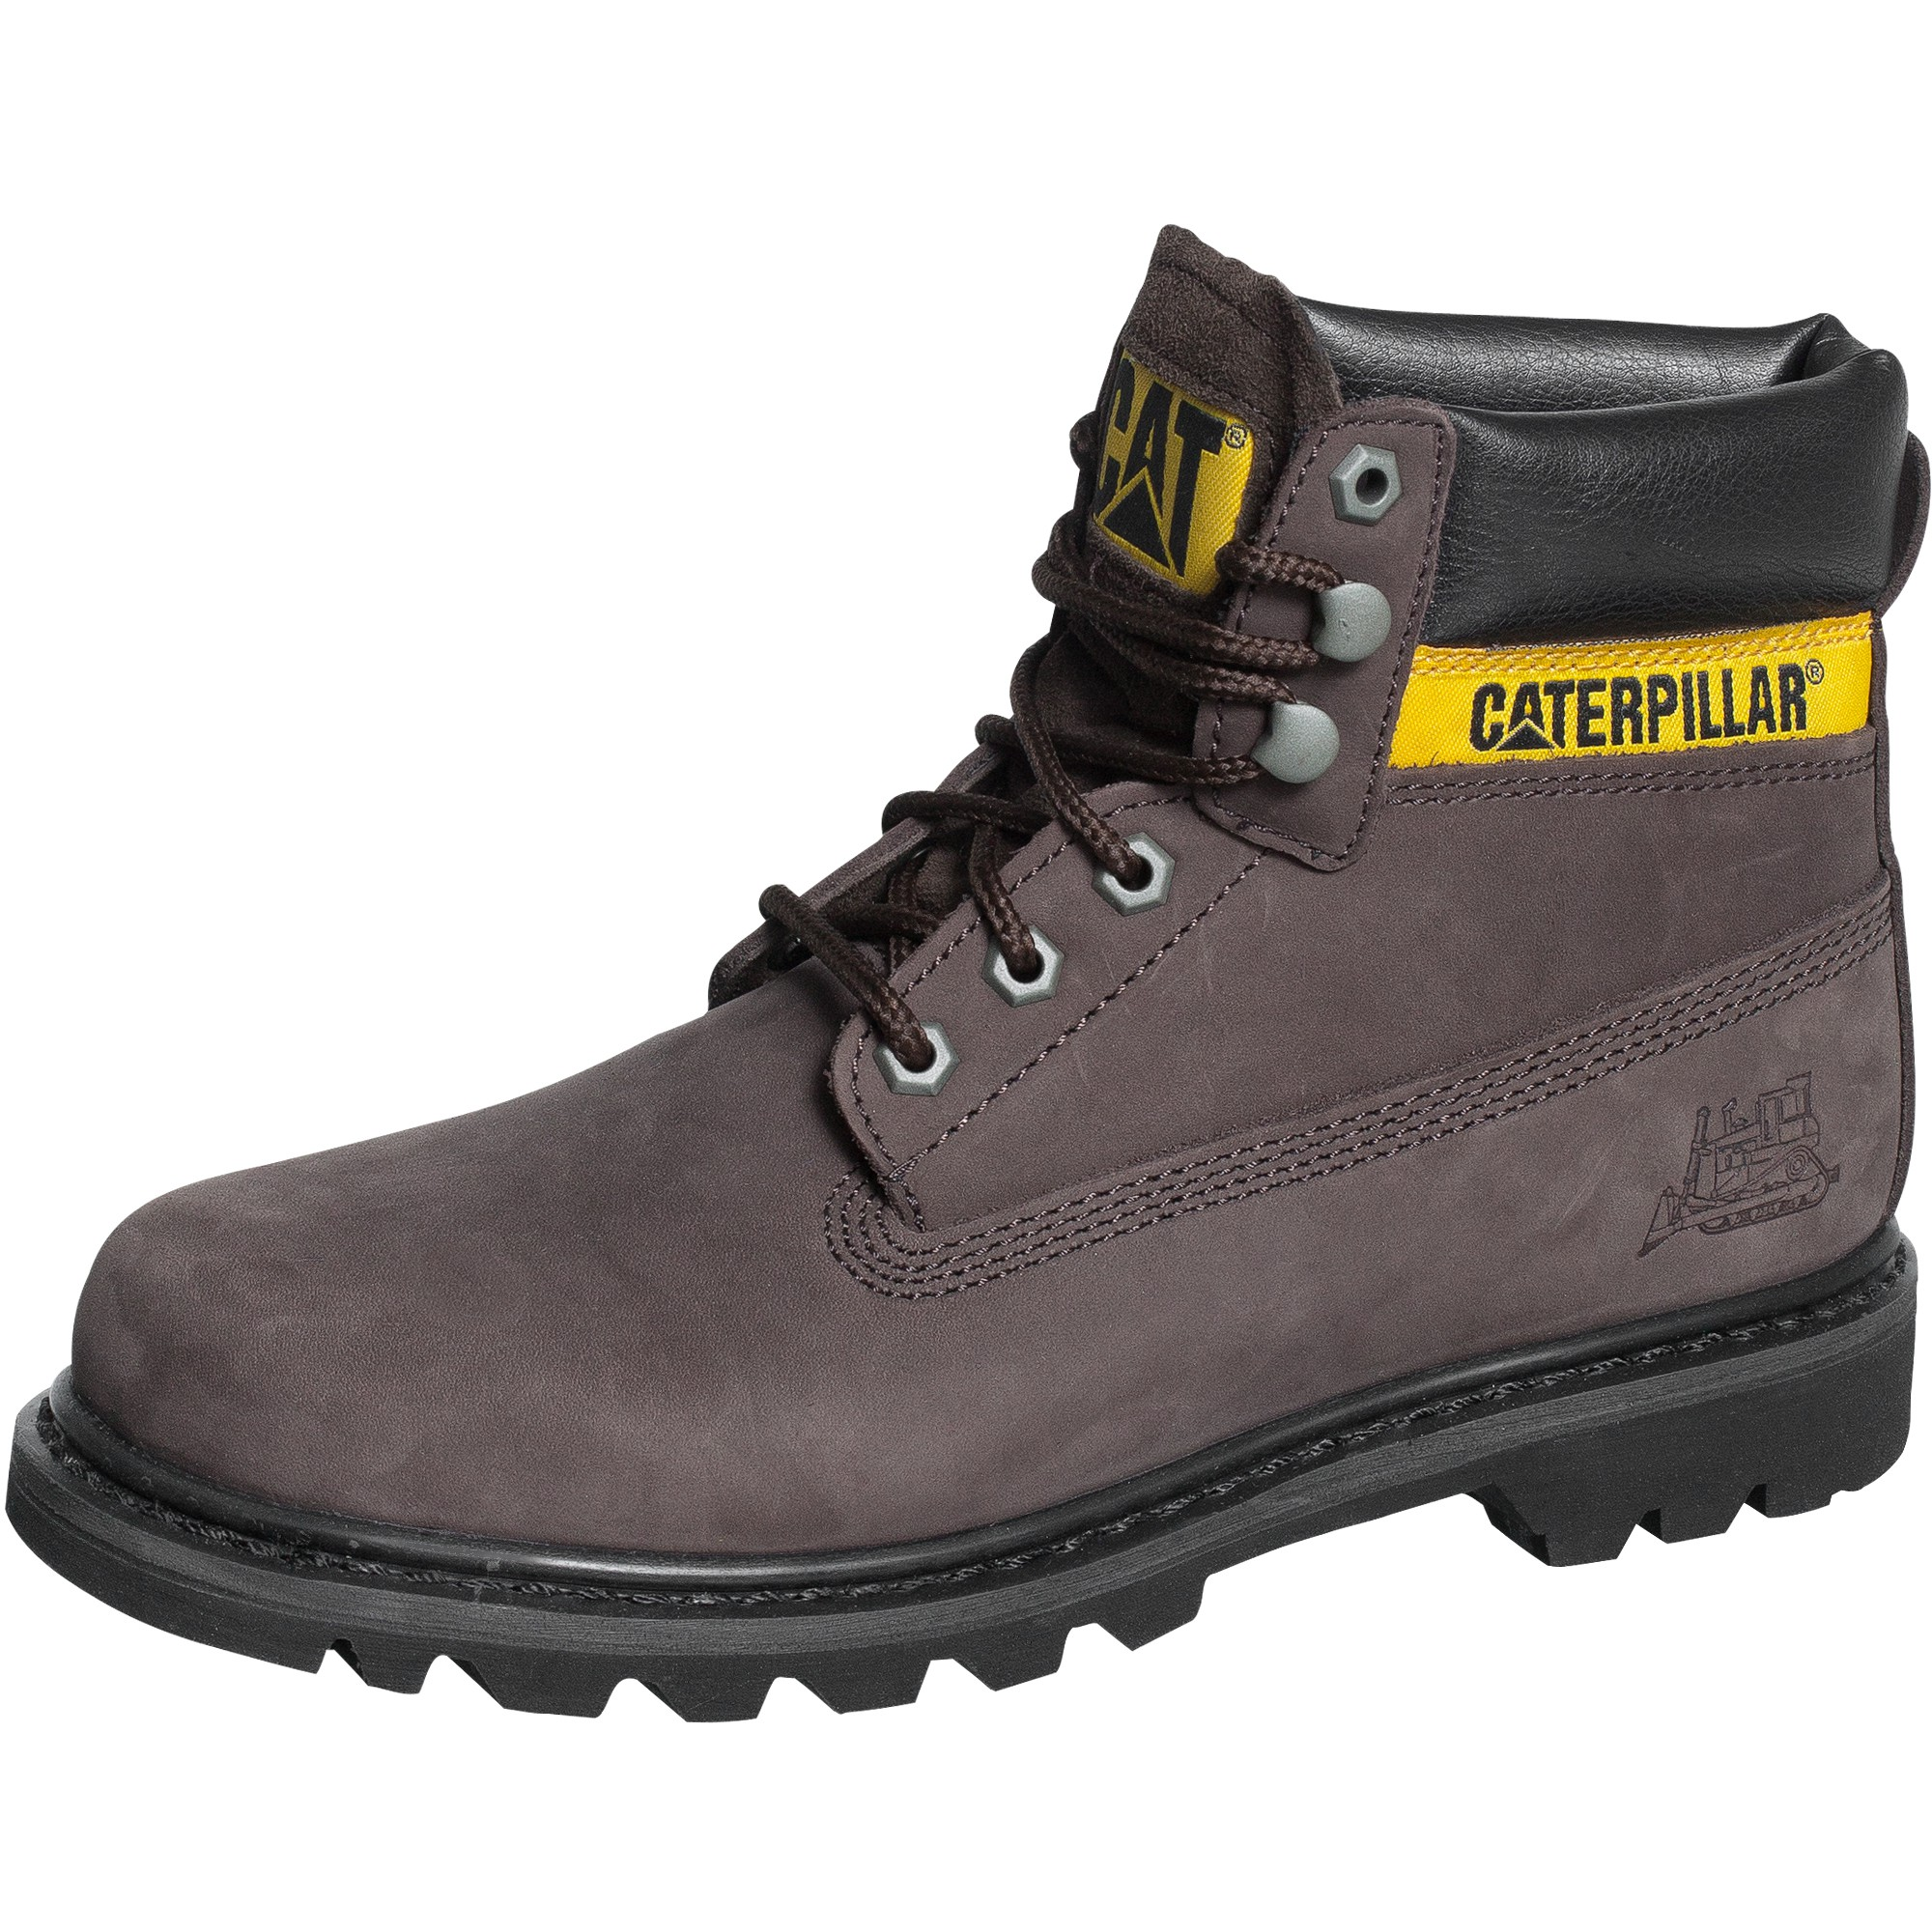 caterpillar cat colorado boots stiefel schuhe leder stickshift ebay. Black Bedroom Furniture Sets. Home Design Ideas